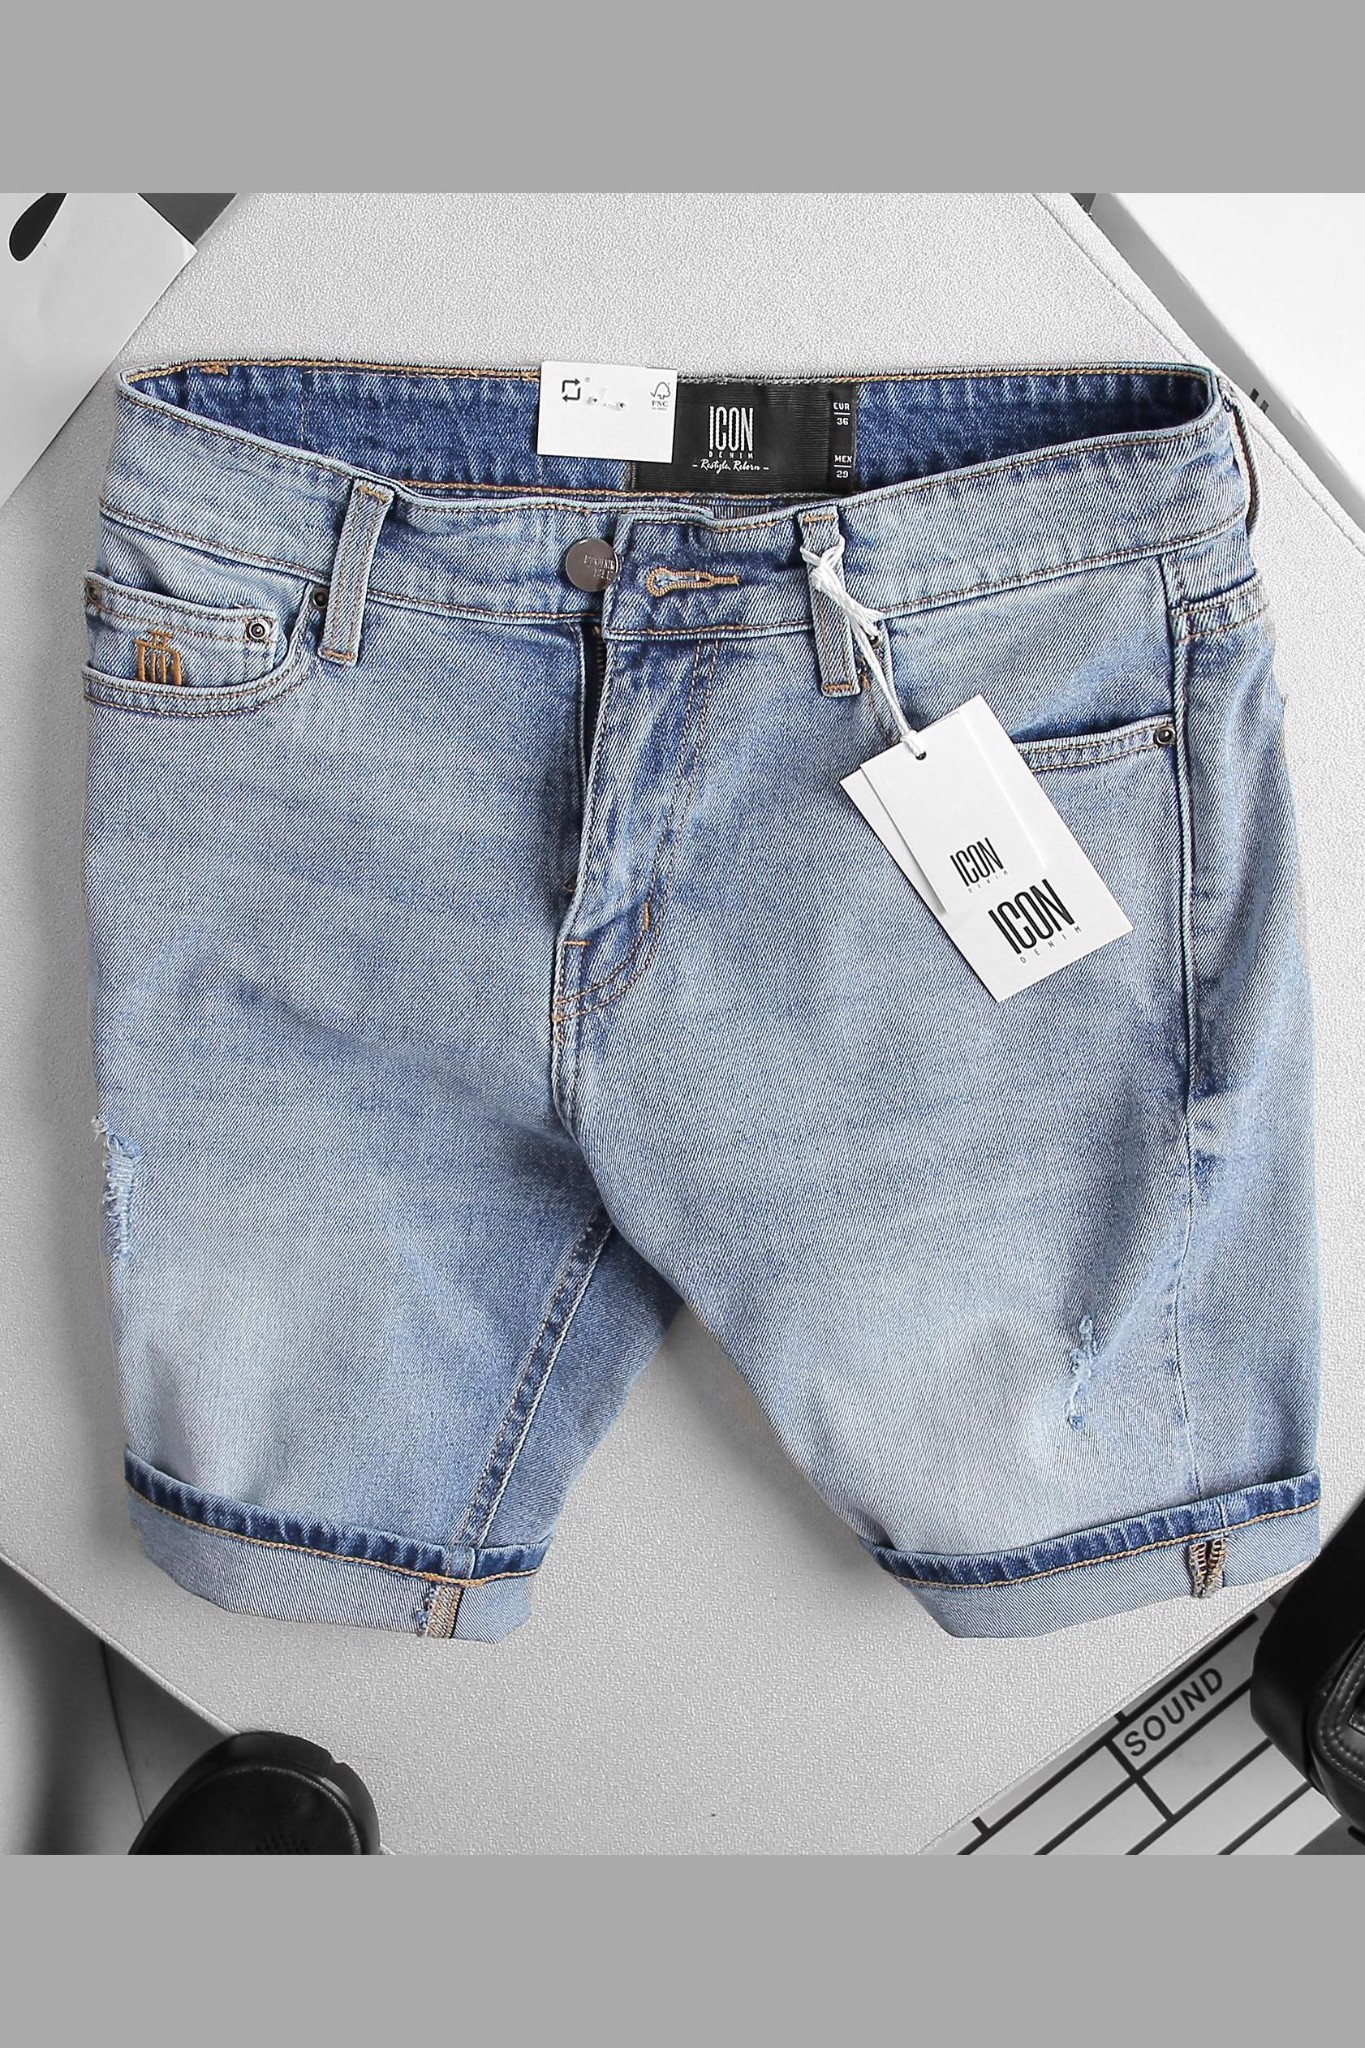 Quần Short Jean Wash W ID Embroidered Pocket